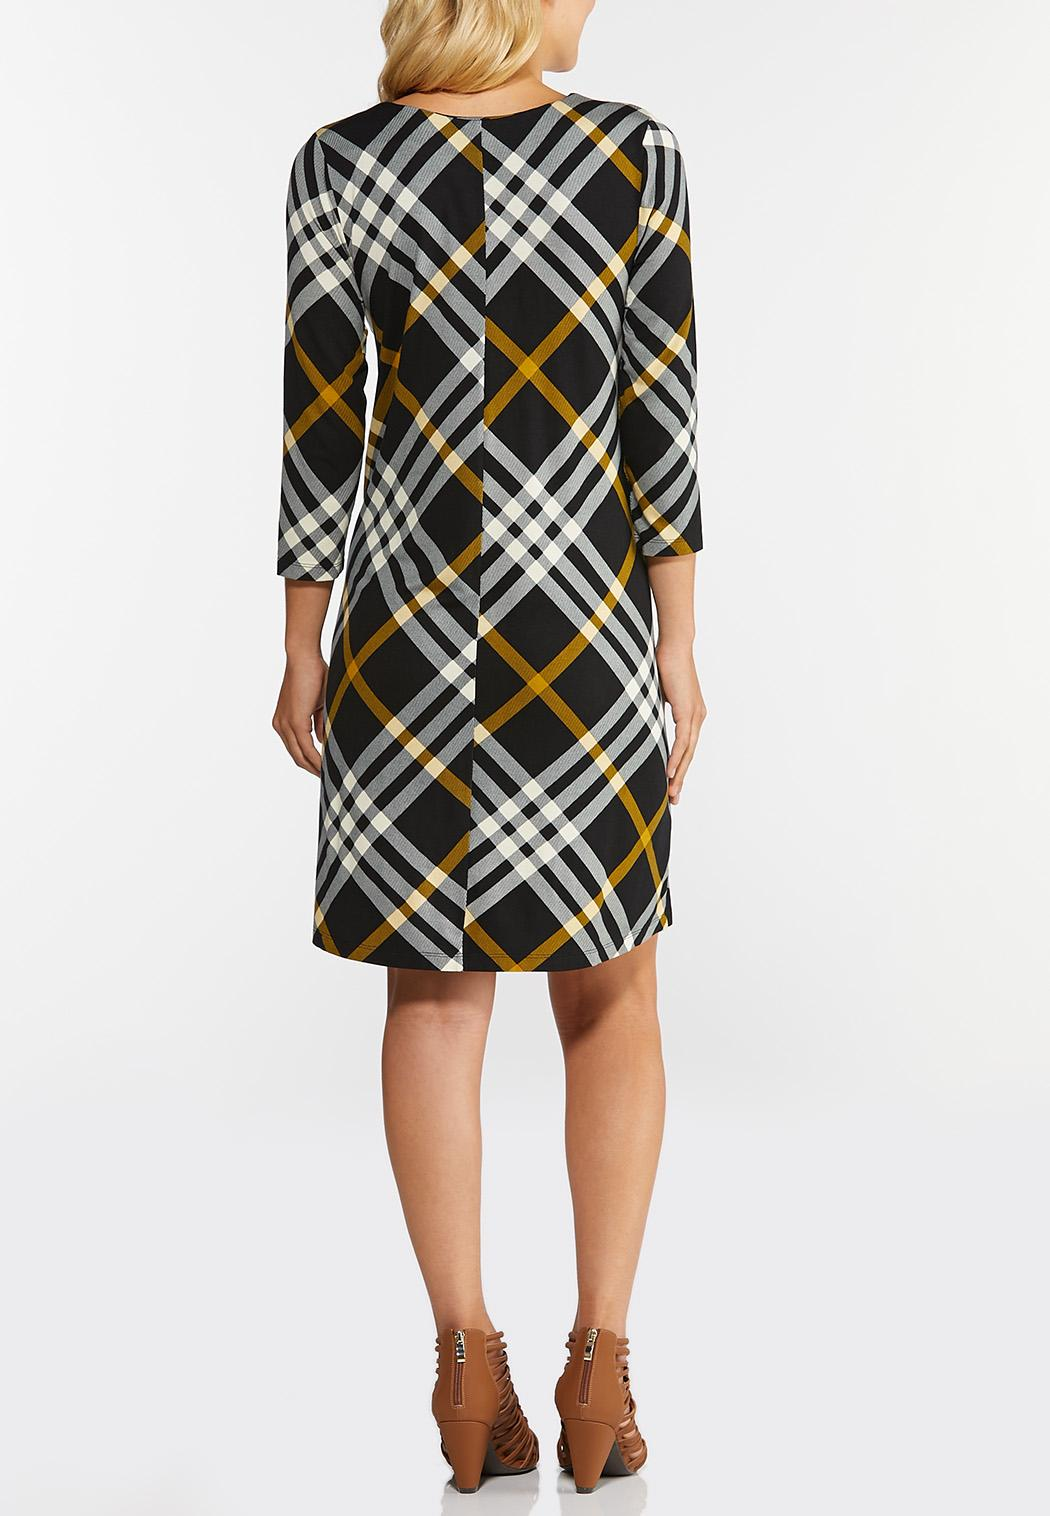 Plus Size Plaid Swing Dress (Item #43921725)